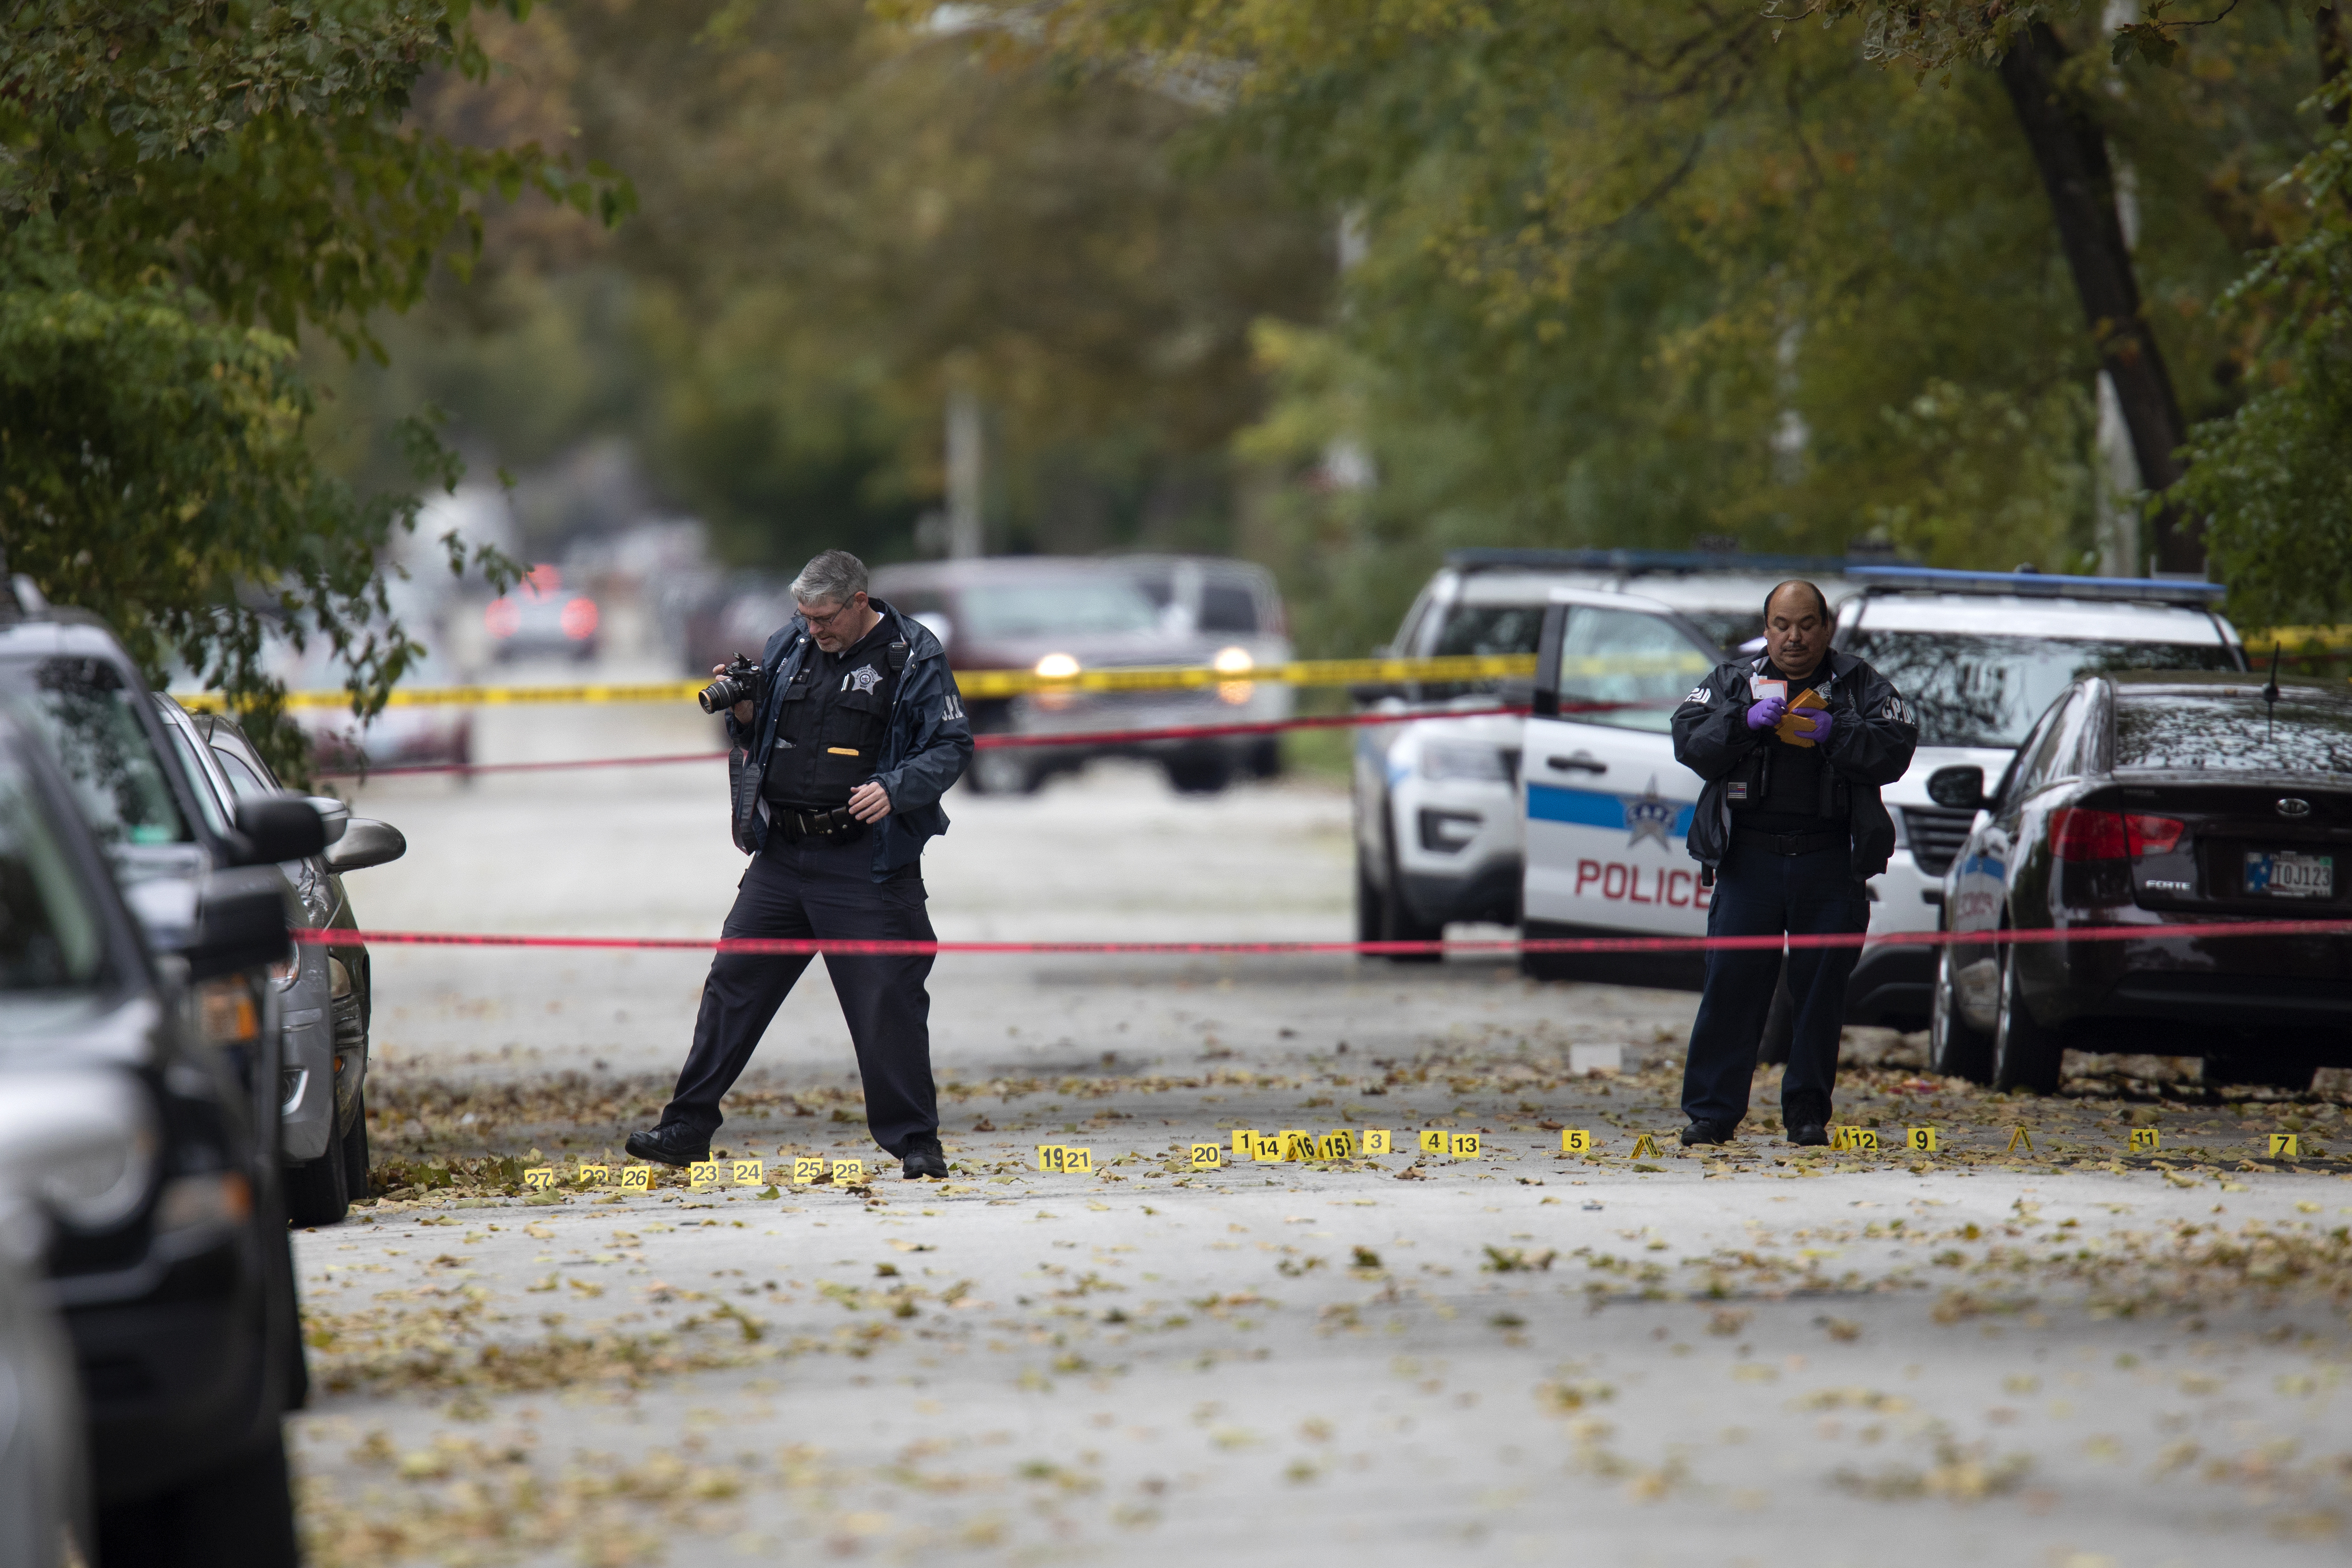 2 gunmen wound 13 at a Chicago house party honoring a gun violence victim